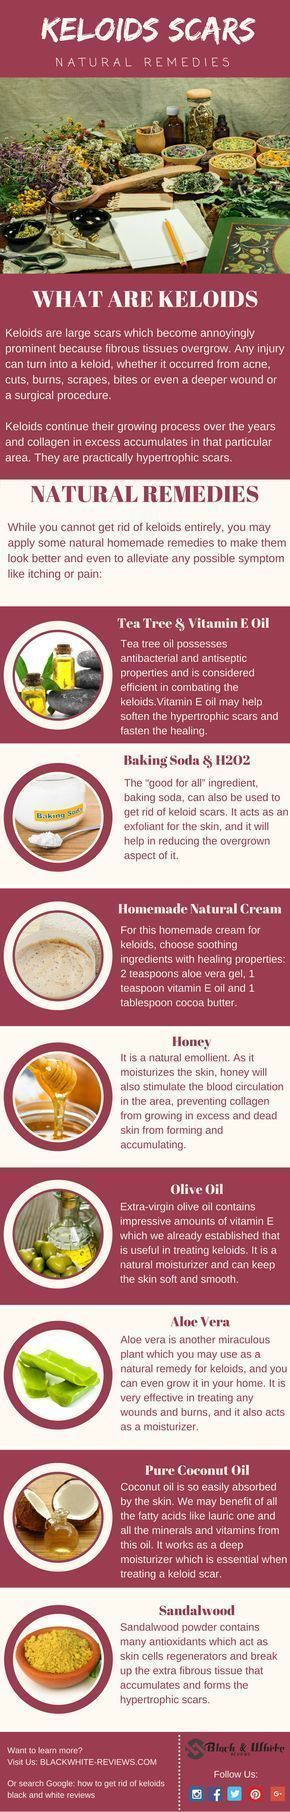 Keloids scars treatment. How to get rid of them with home remedy. http://www.scarrcreams.com/pimple-scars-removal/ #acneremediesscar